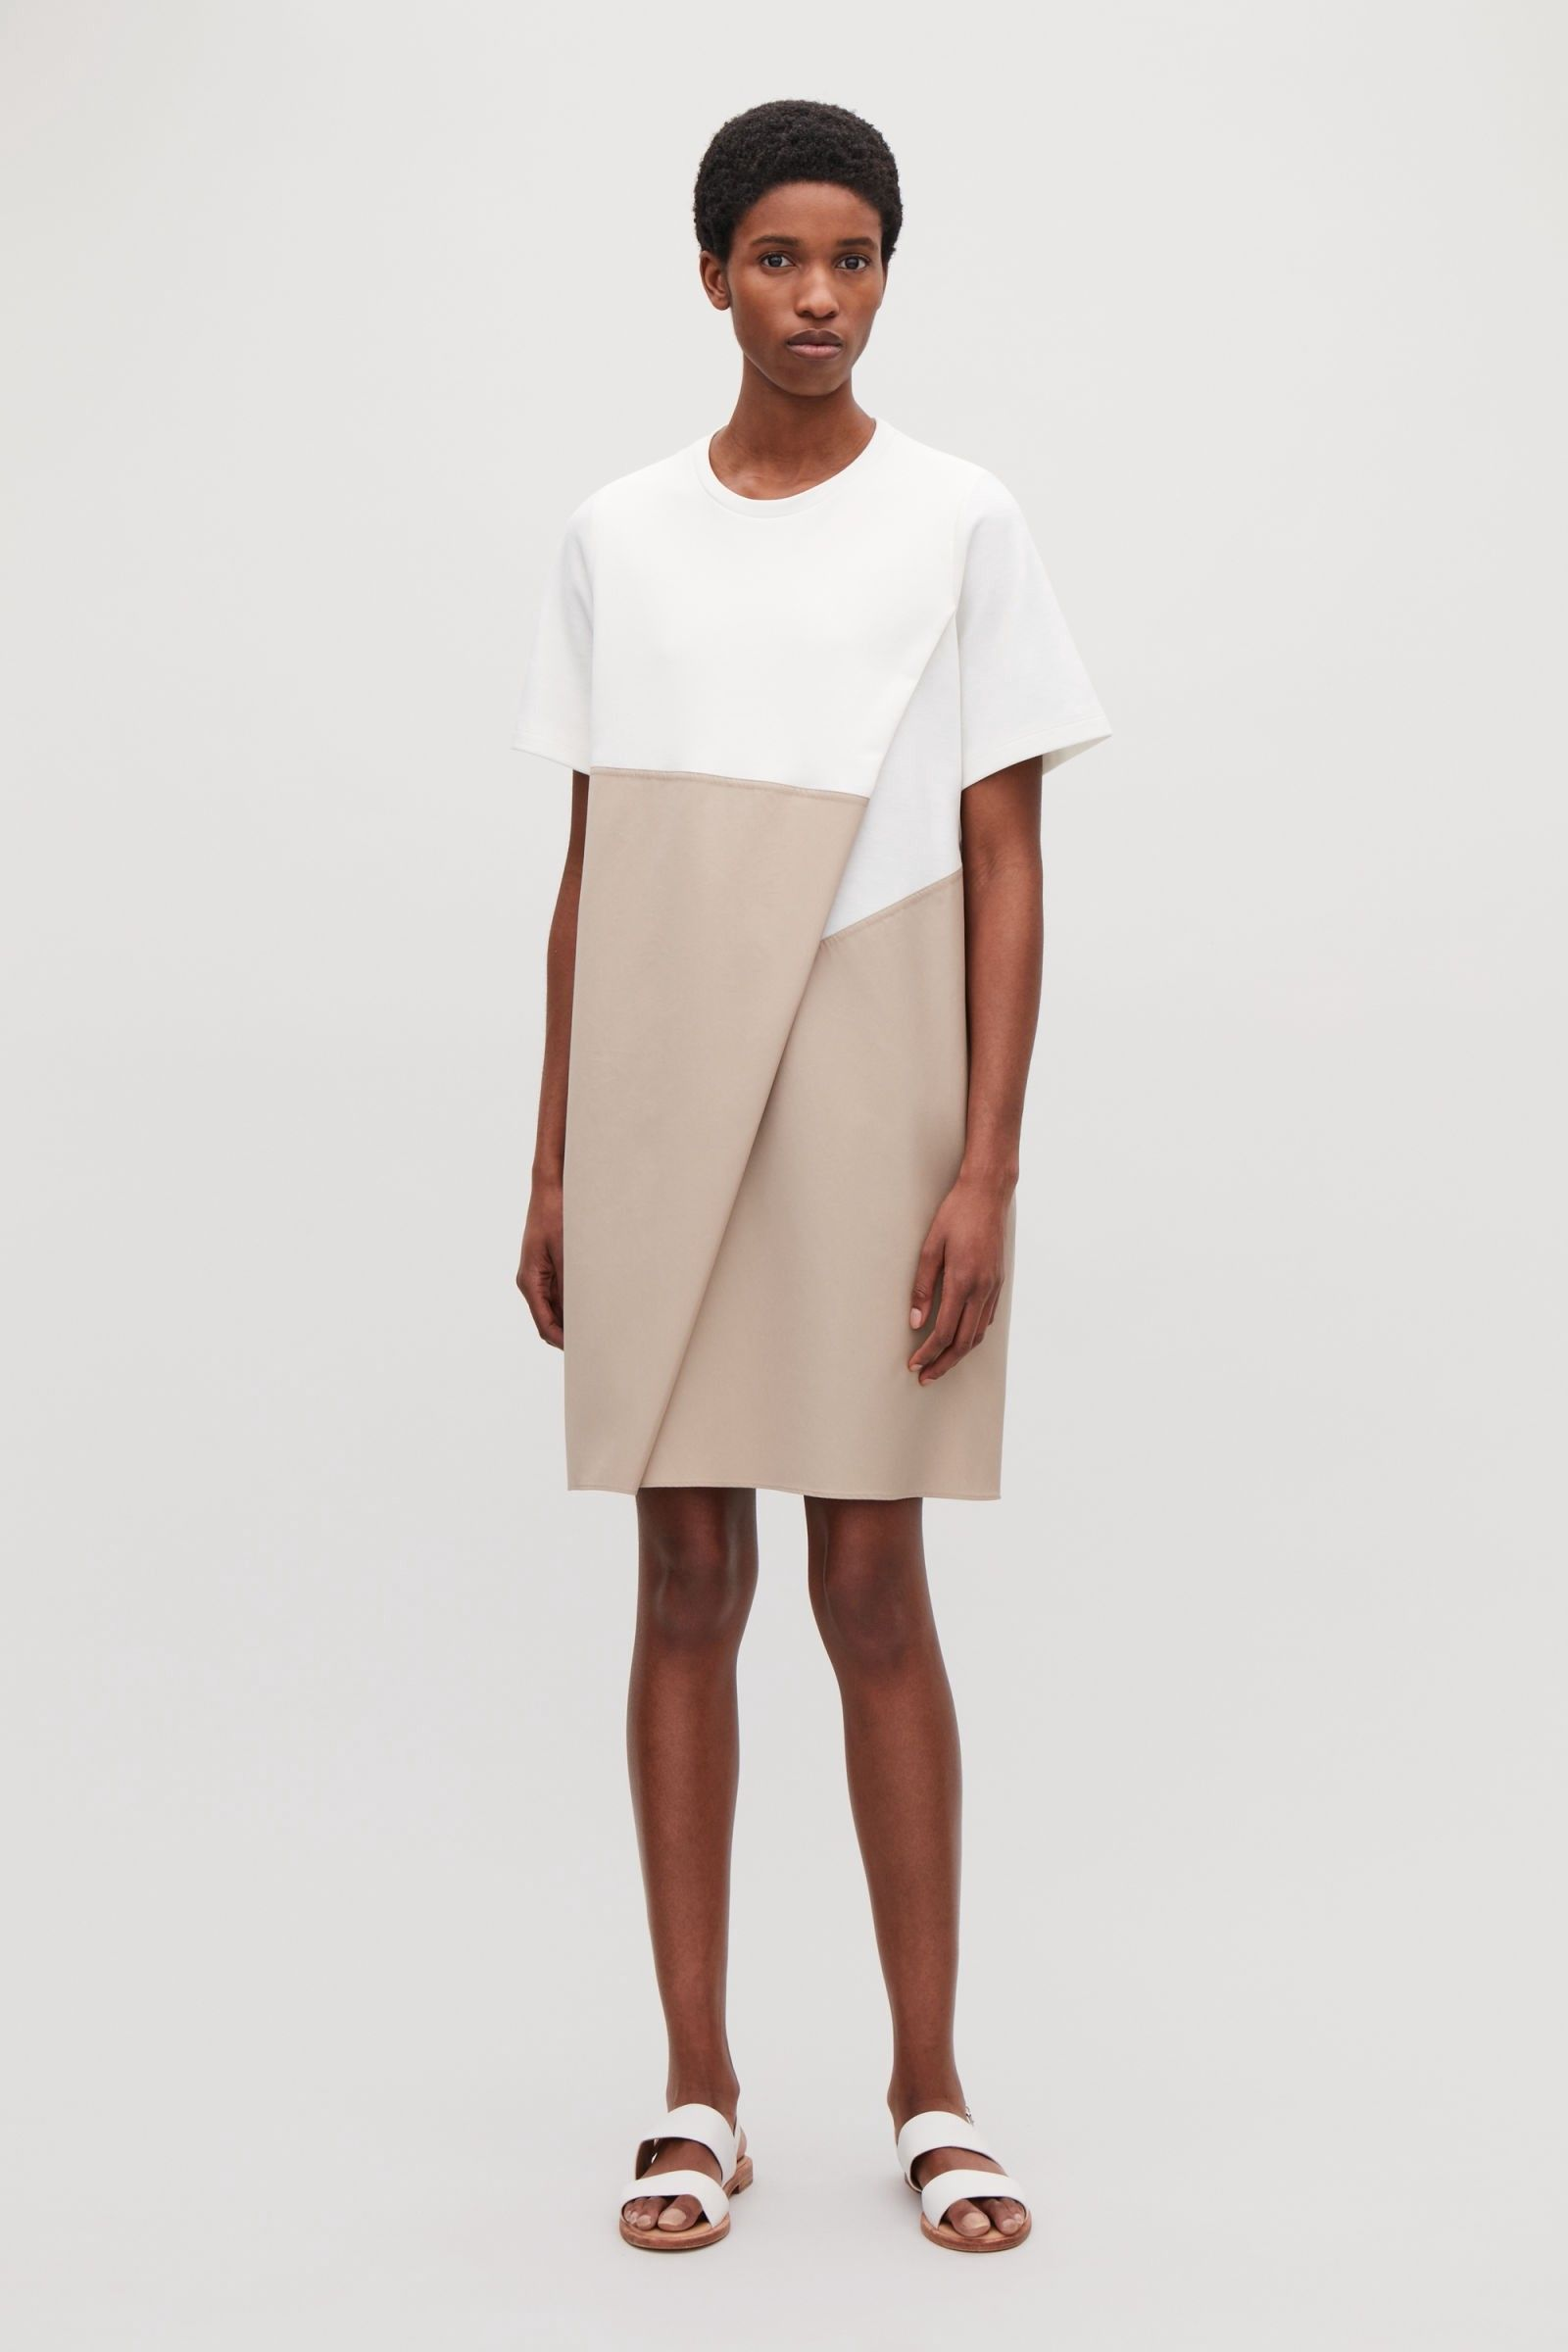 65ce95928bbf POPLIN-PANELLED JERSEY DRESS - ivory(OUT OF STOCK) by COS in 2019 ...